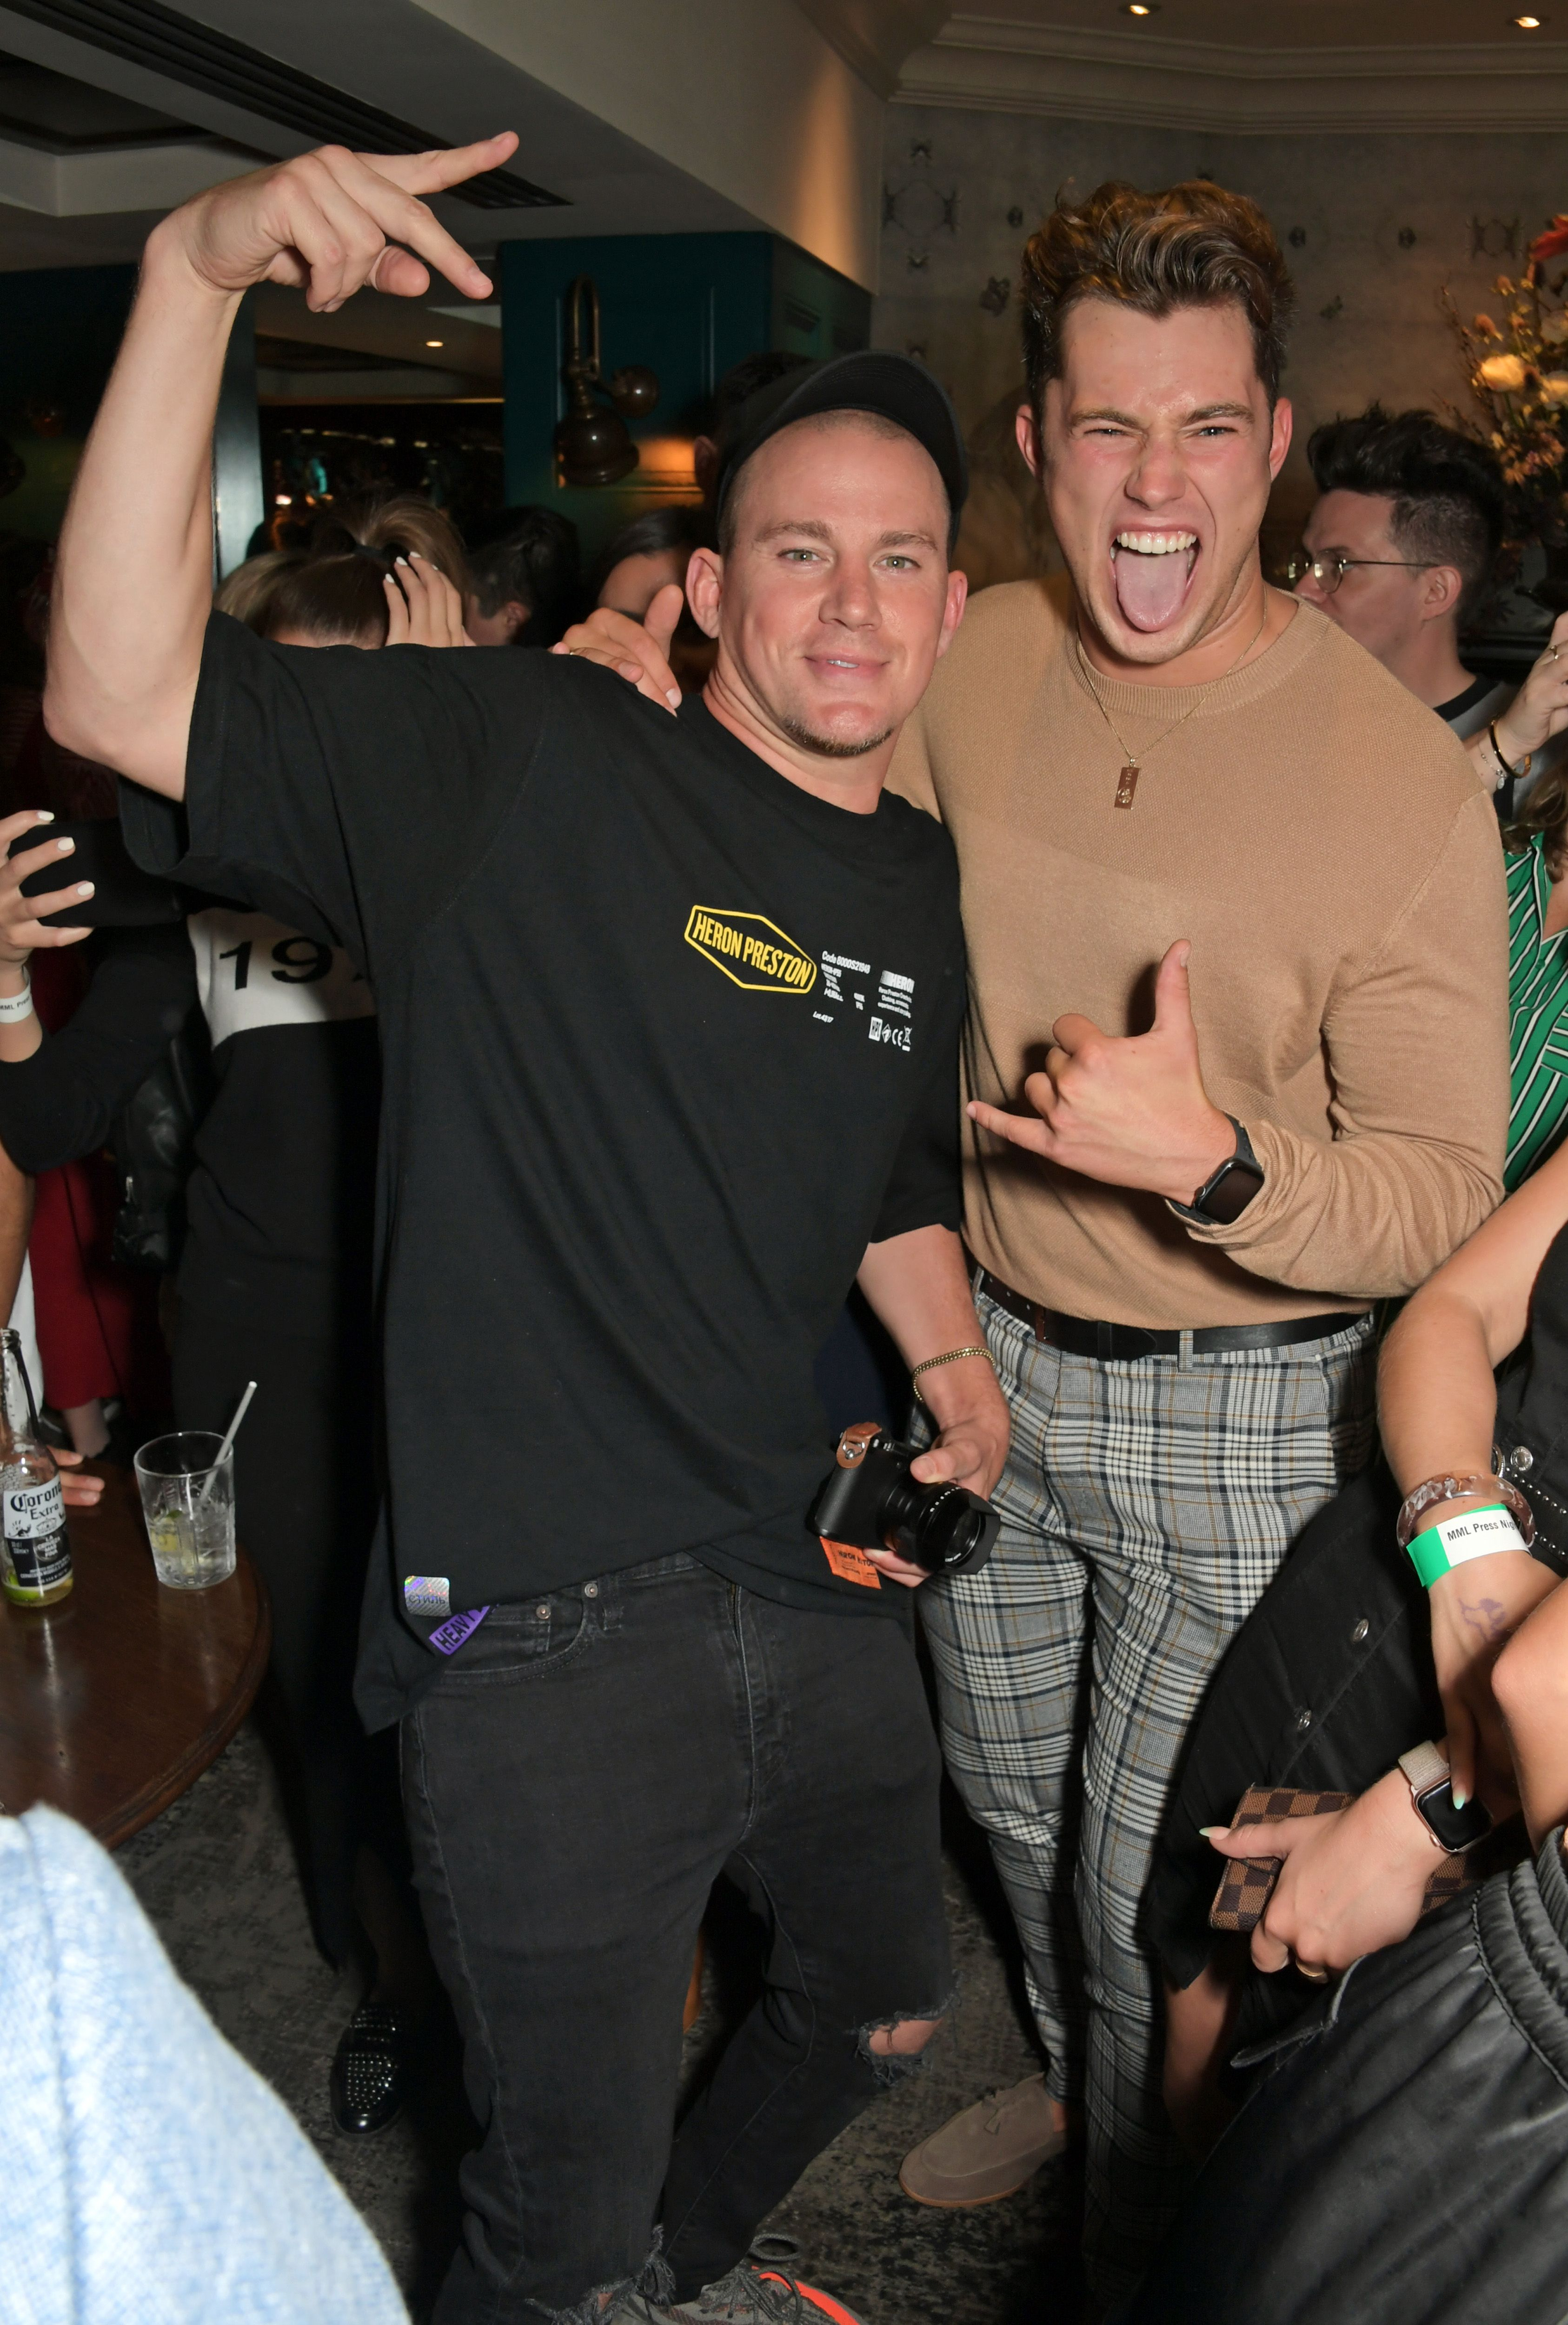 Channing Tatum Has Reportedly Moved To London Permanently, To Live With Jessie J